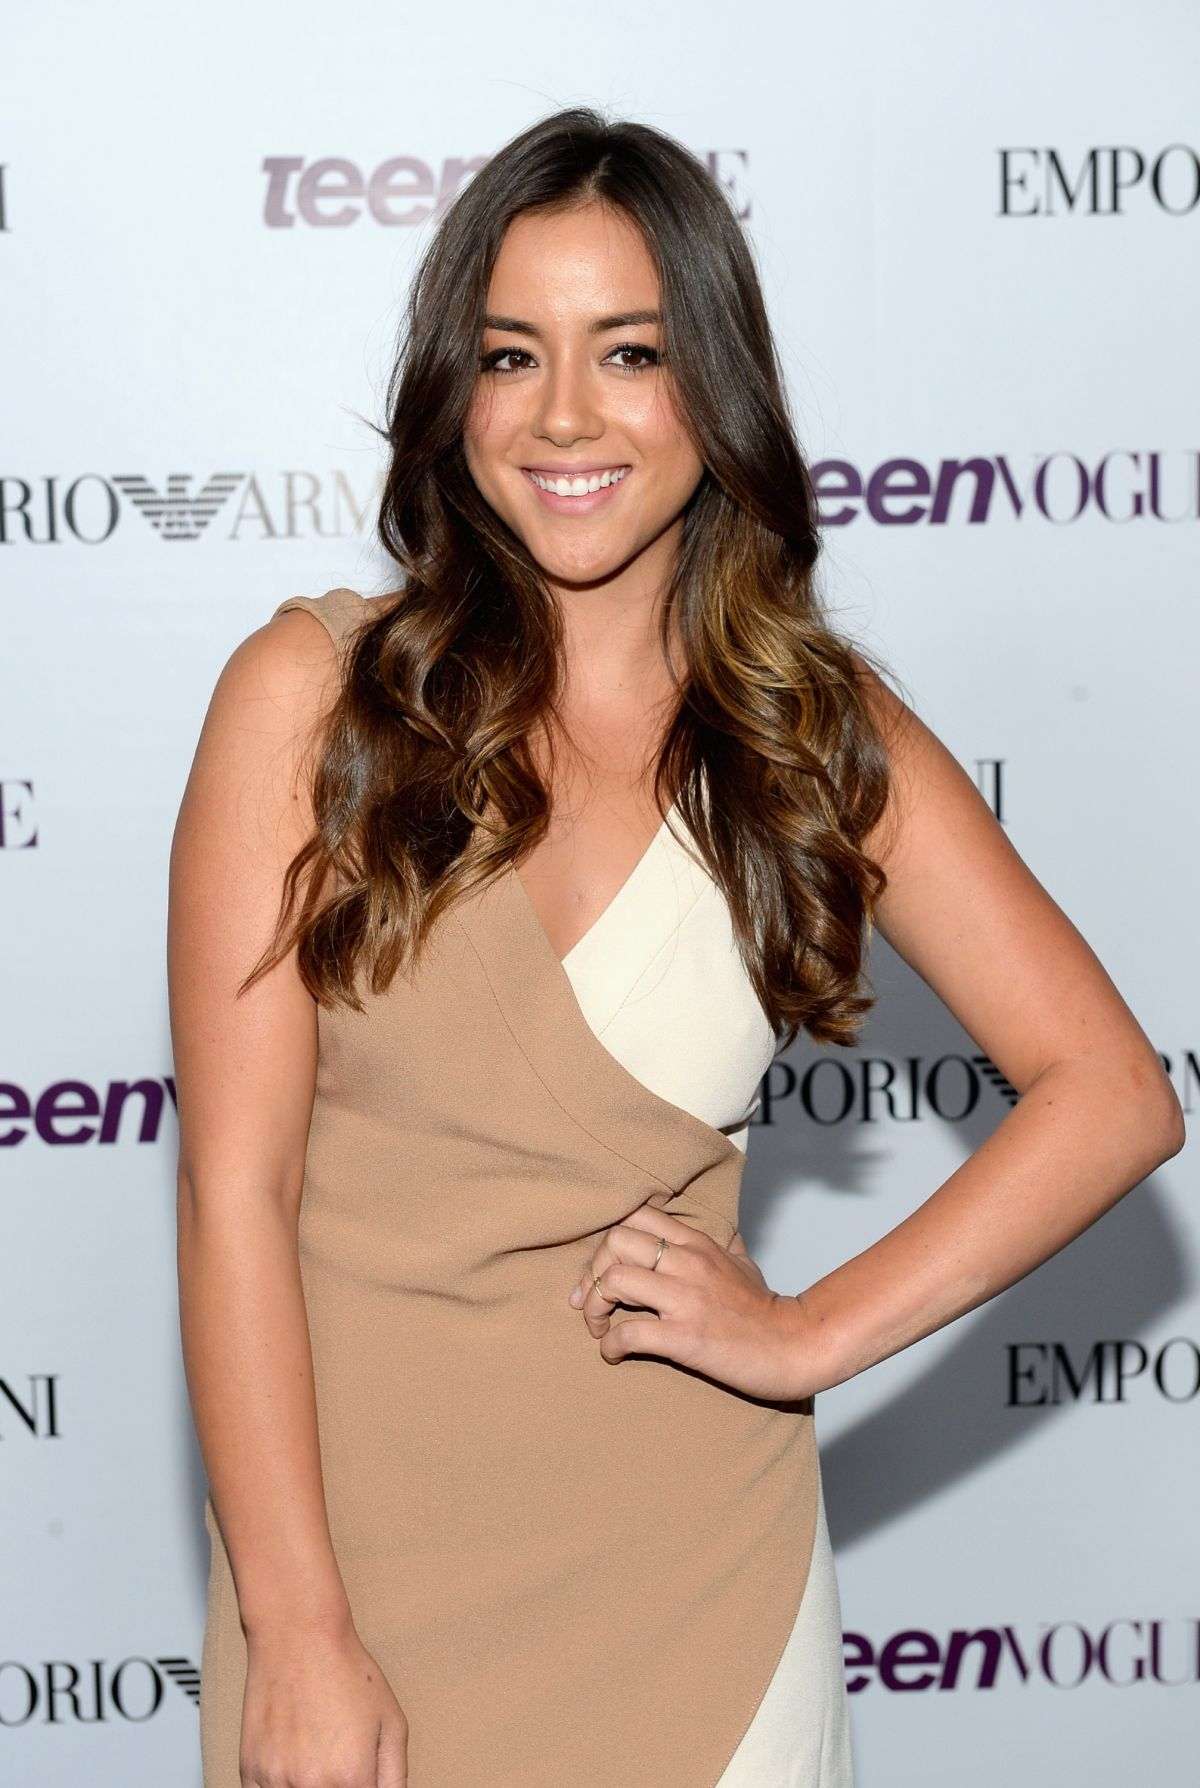 Young Chloe Bennet nudes (62 foto and video), Ass, Leaked, Instagram, see through 2006